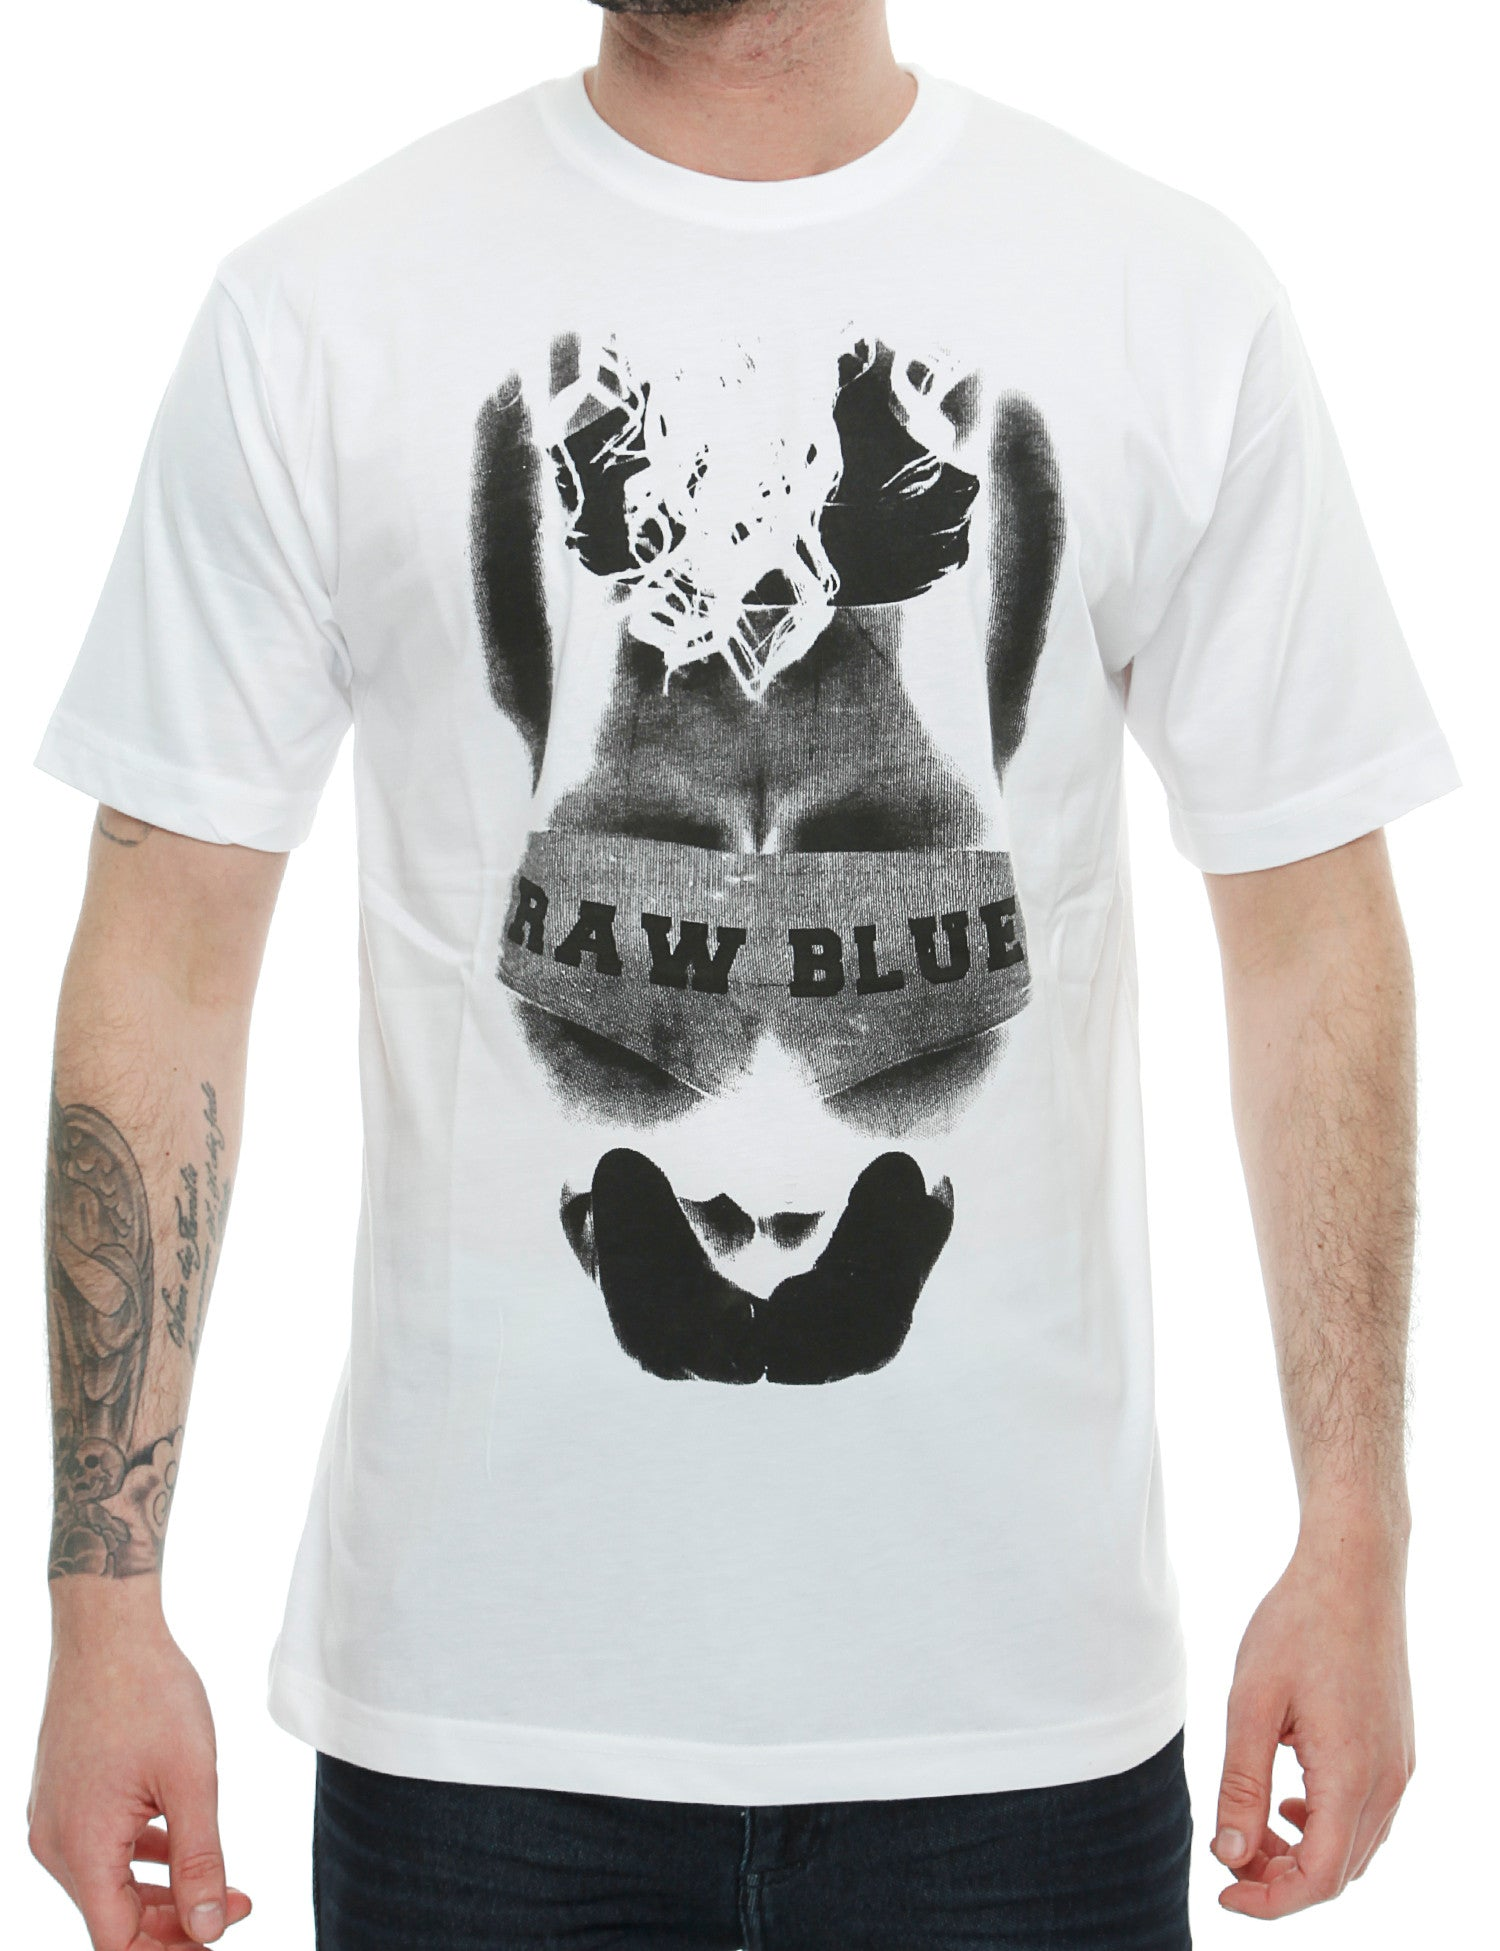 Raw Blue Big Butt T-Shirt RB16-002 White